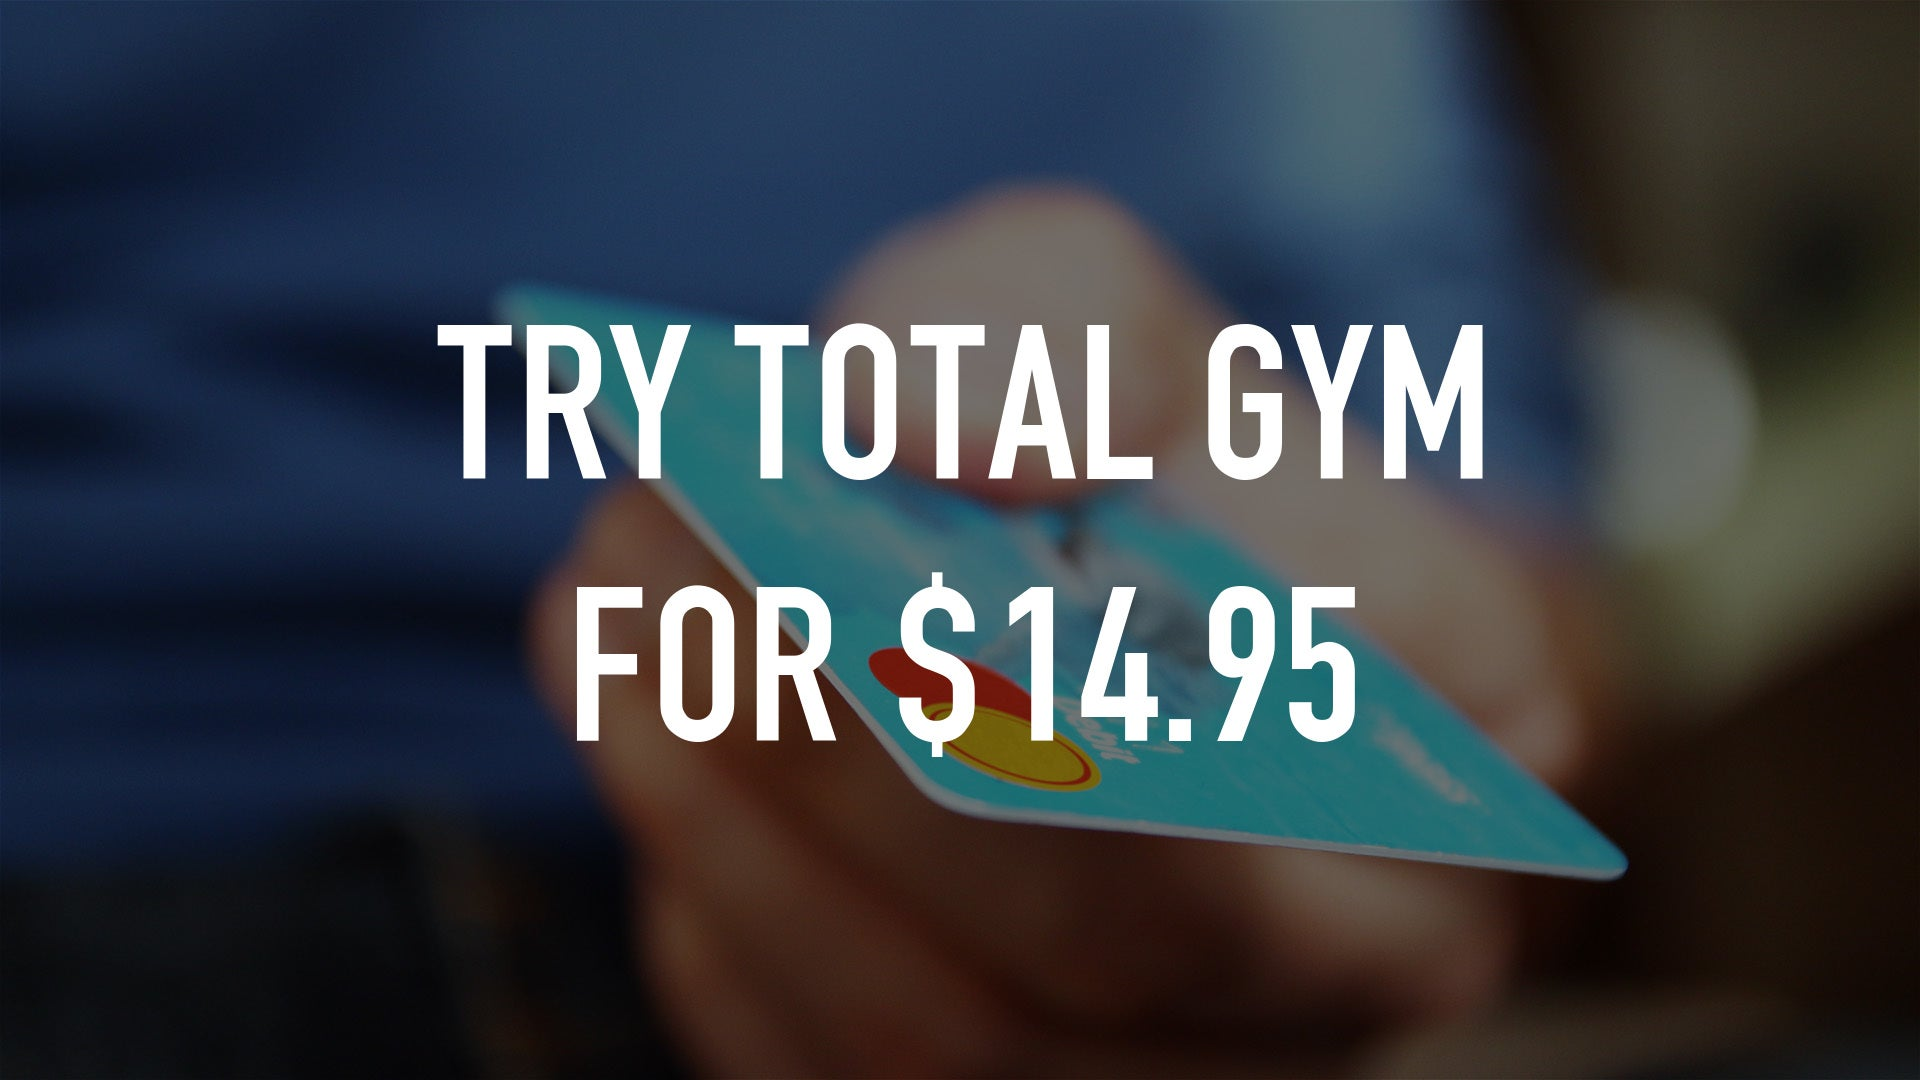 Try Total Gym for $14.95